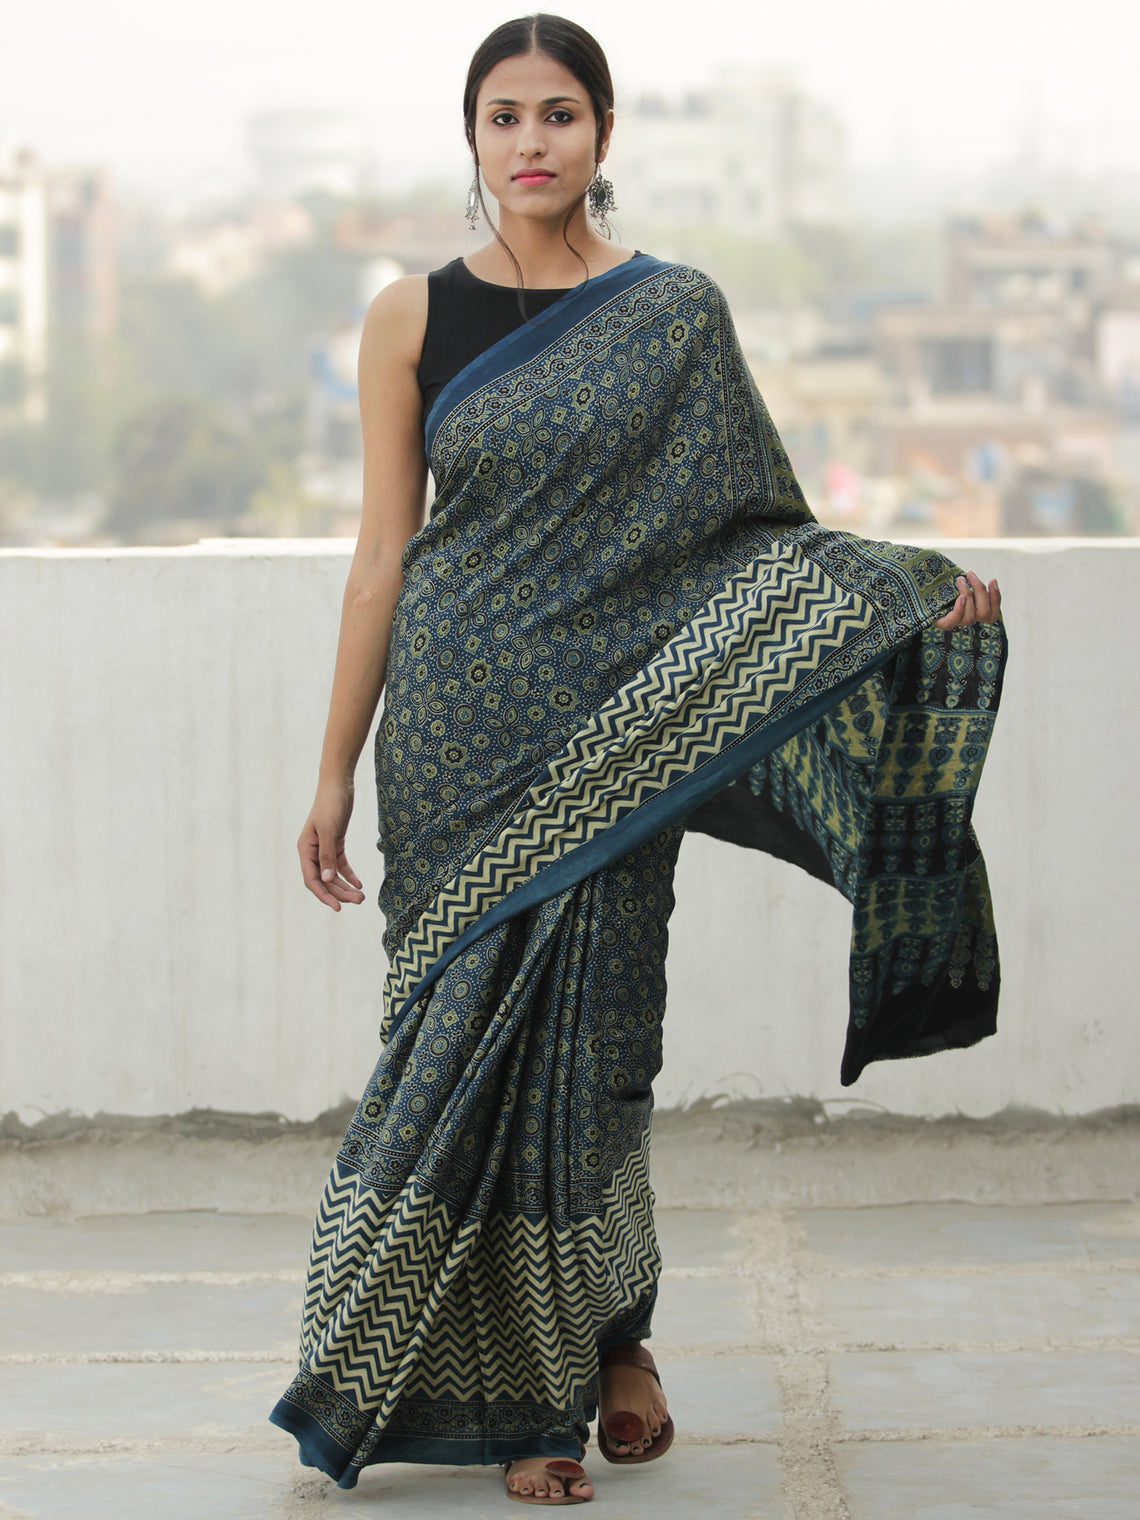 Green Indigo Ivory Ajrakh Hand Block Printed Modal Silk Saree in Natural Colors - S031704113